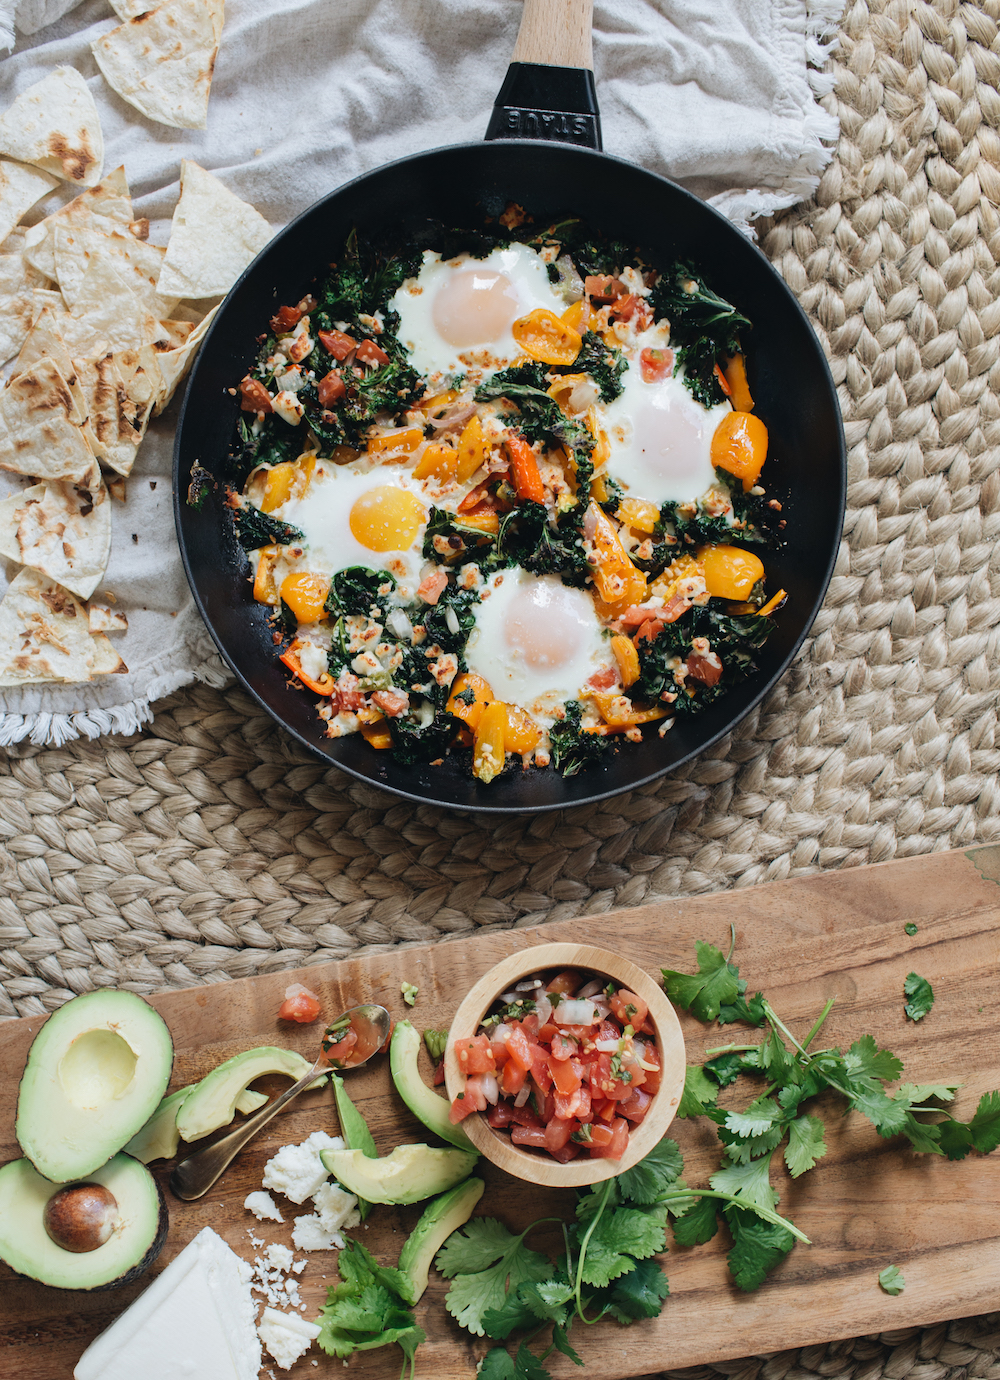 Spicy Mexican Baked Eggs with Queso Fresco & Avocado